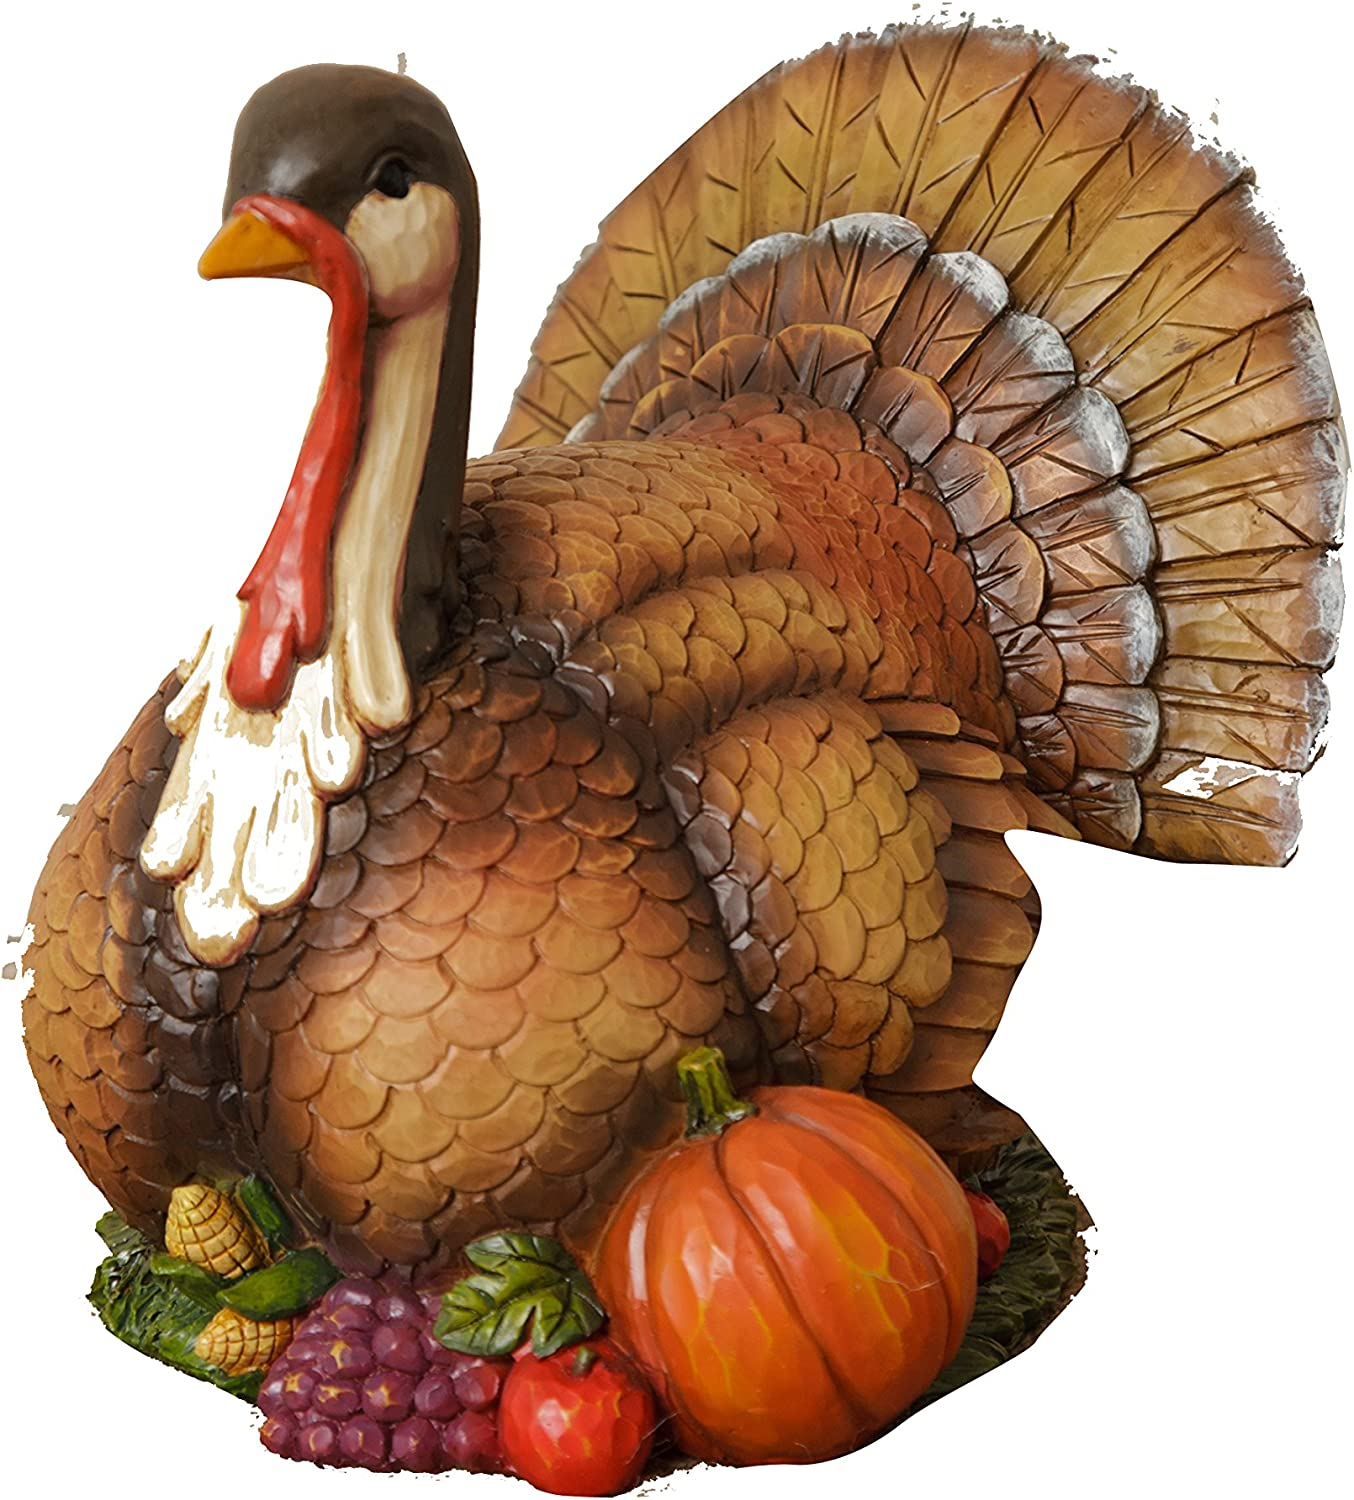 "Your Heart's Delight 6RS334 8.75"" x 6.75"" x 7.5"" Resin Thanksgiving Turkey Table Decoration"